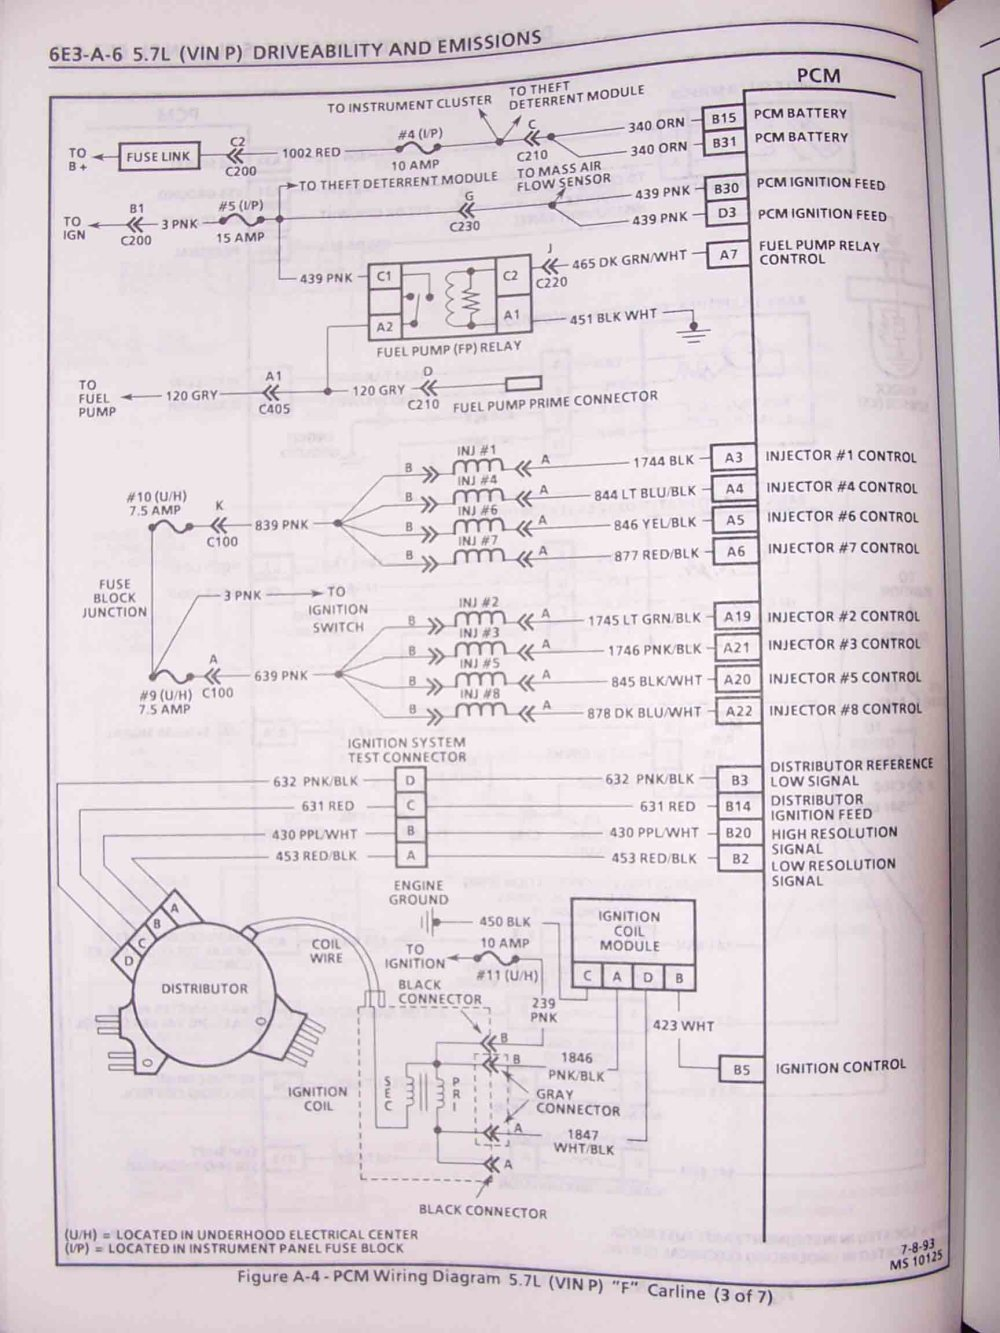 medium resolution of wire harness diagram 95 camaro z28 wiring diagram perfomance 1995 camaro z28 wiring diagram 95 camaro z28 wiring diagram